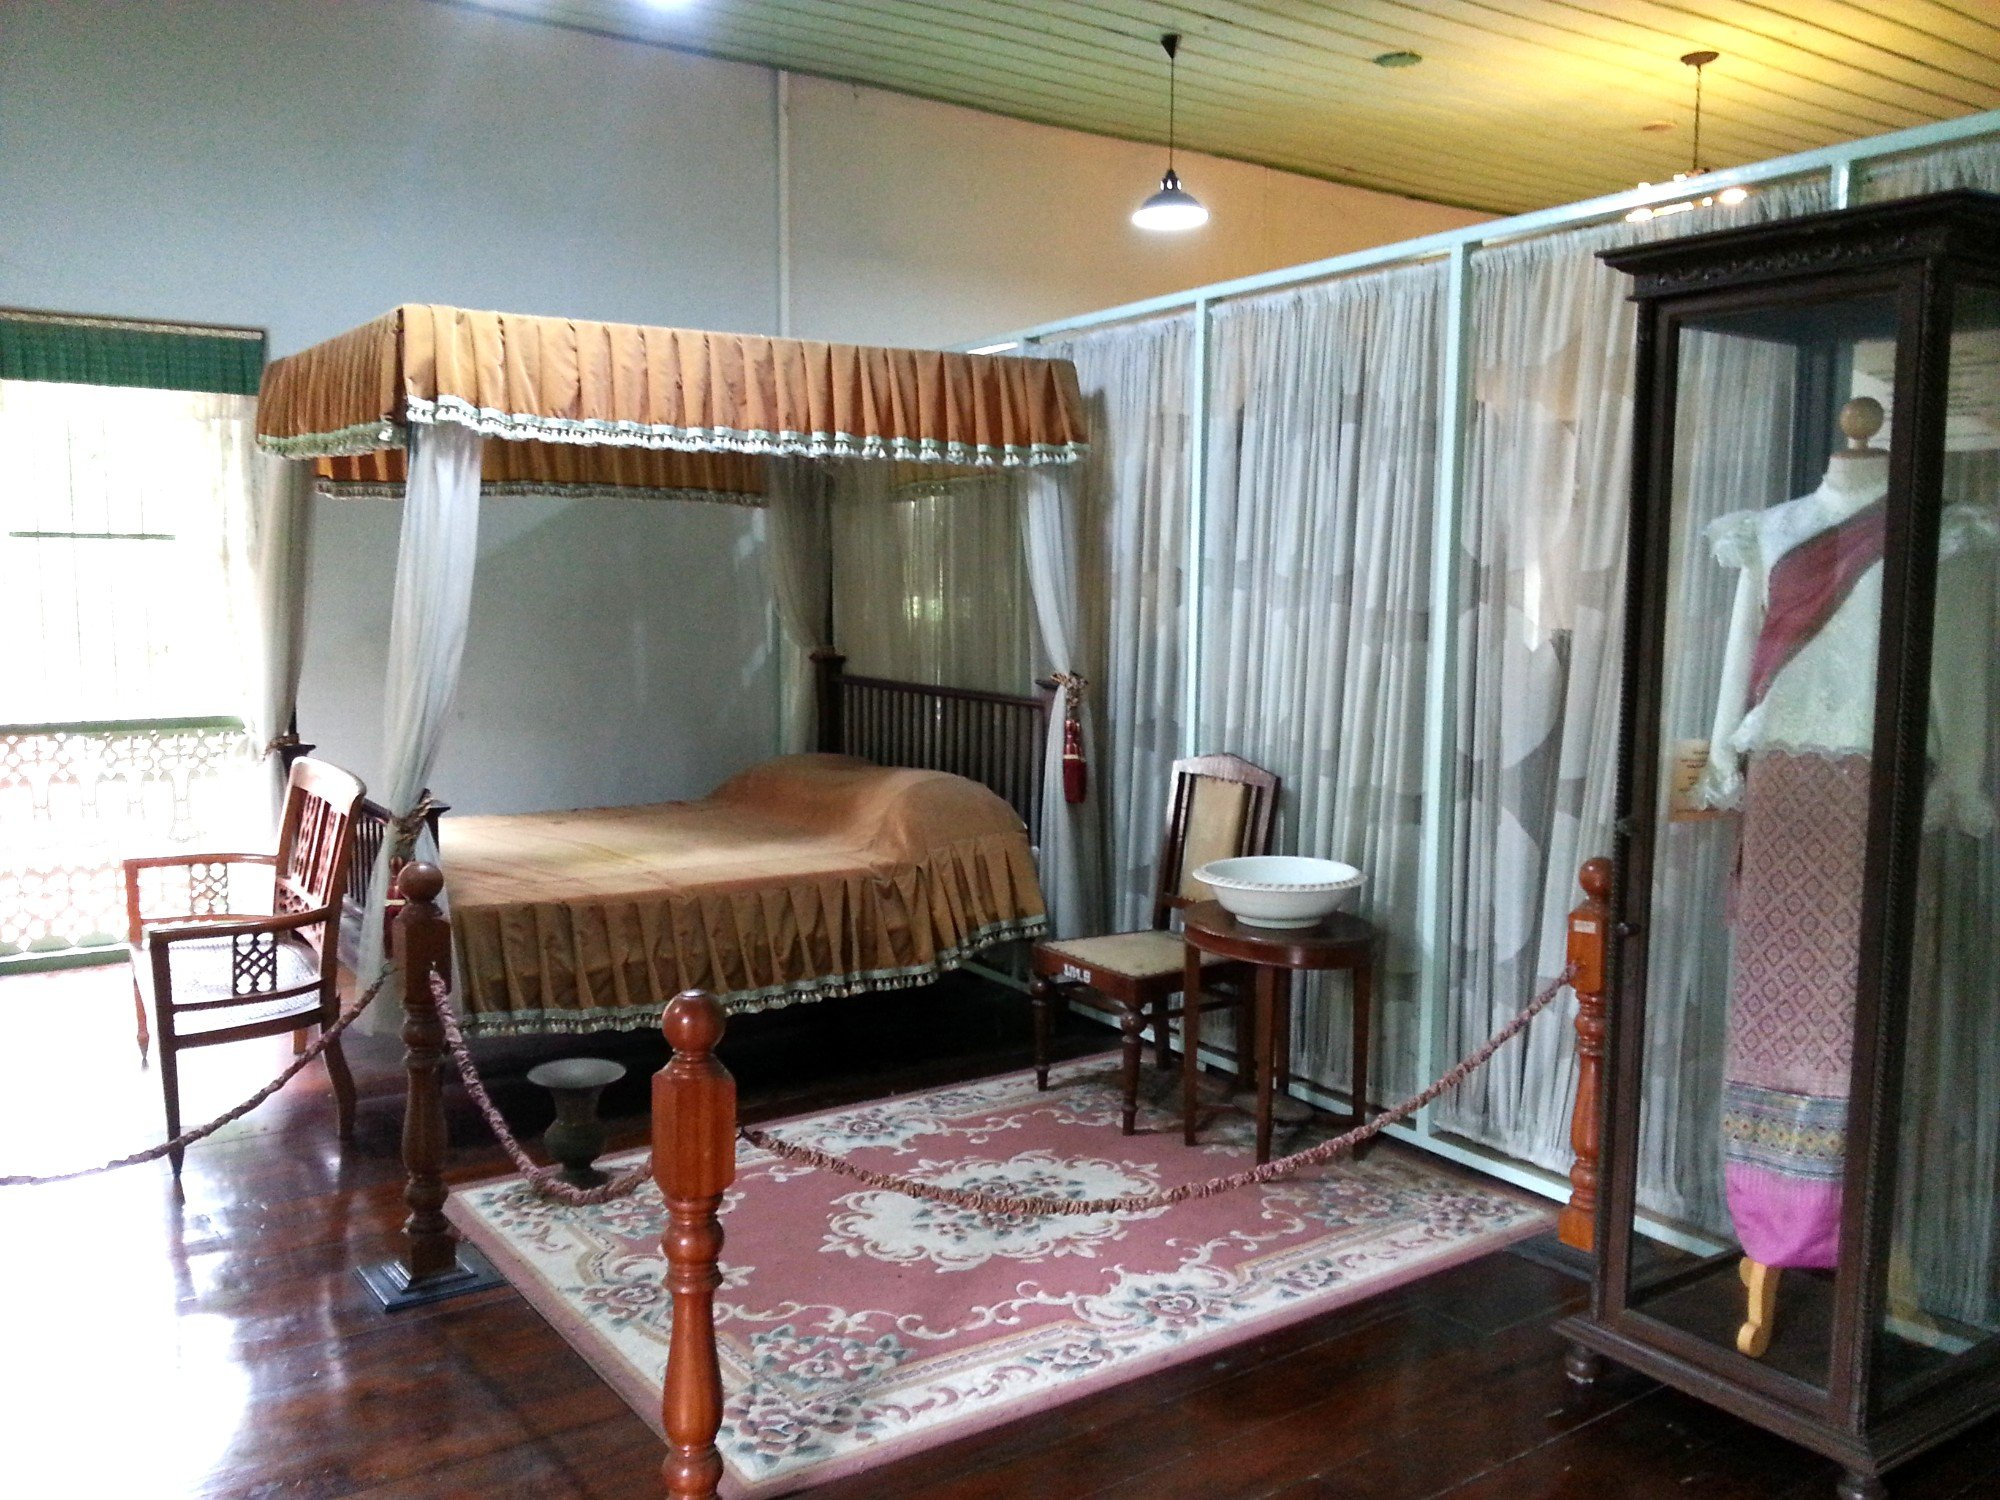 Bedroom of the Chao Luang's wife